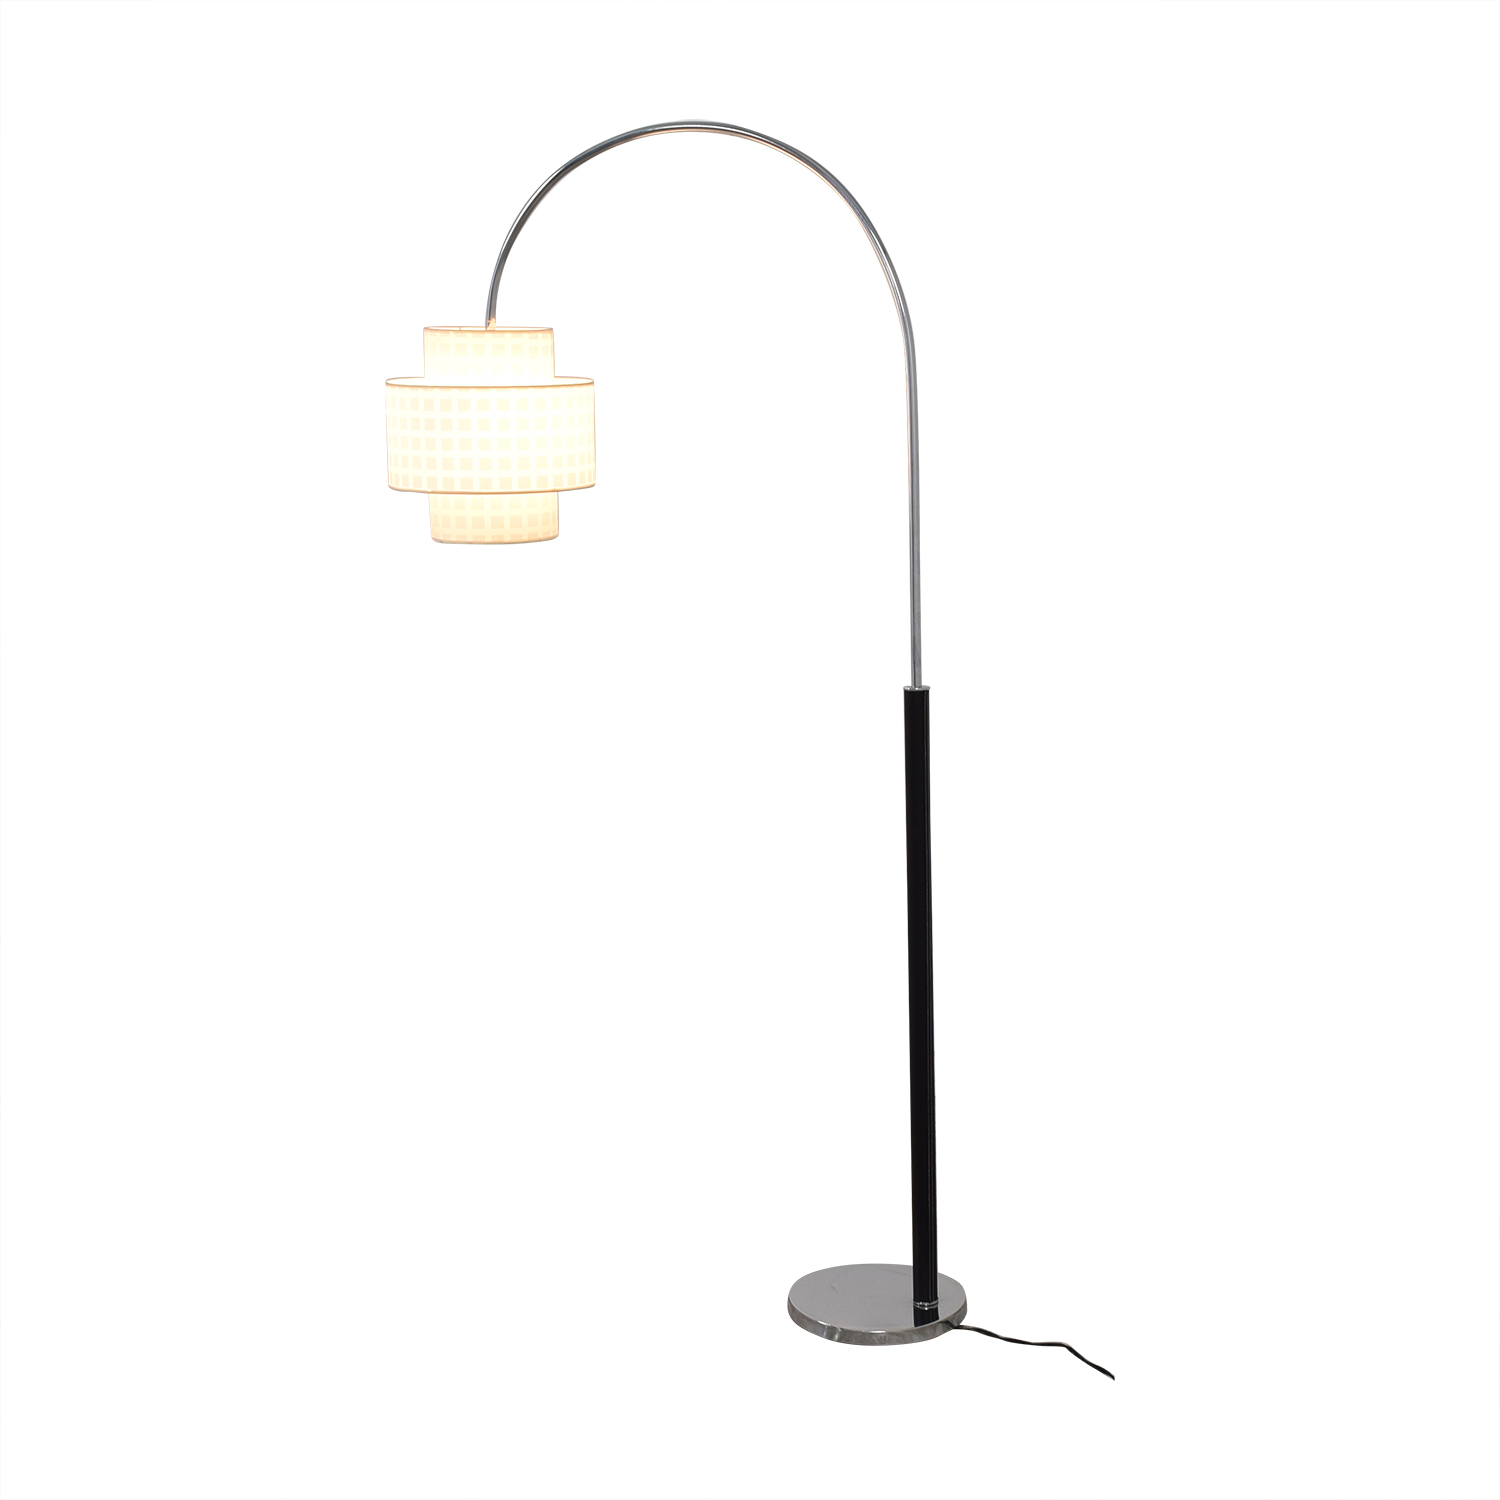 Standing Floor Lamp with Two Section Shade discount